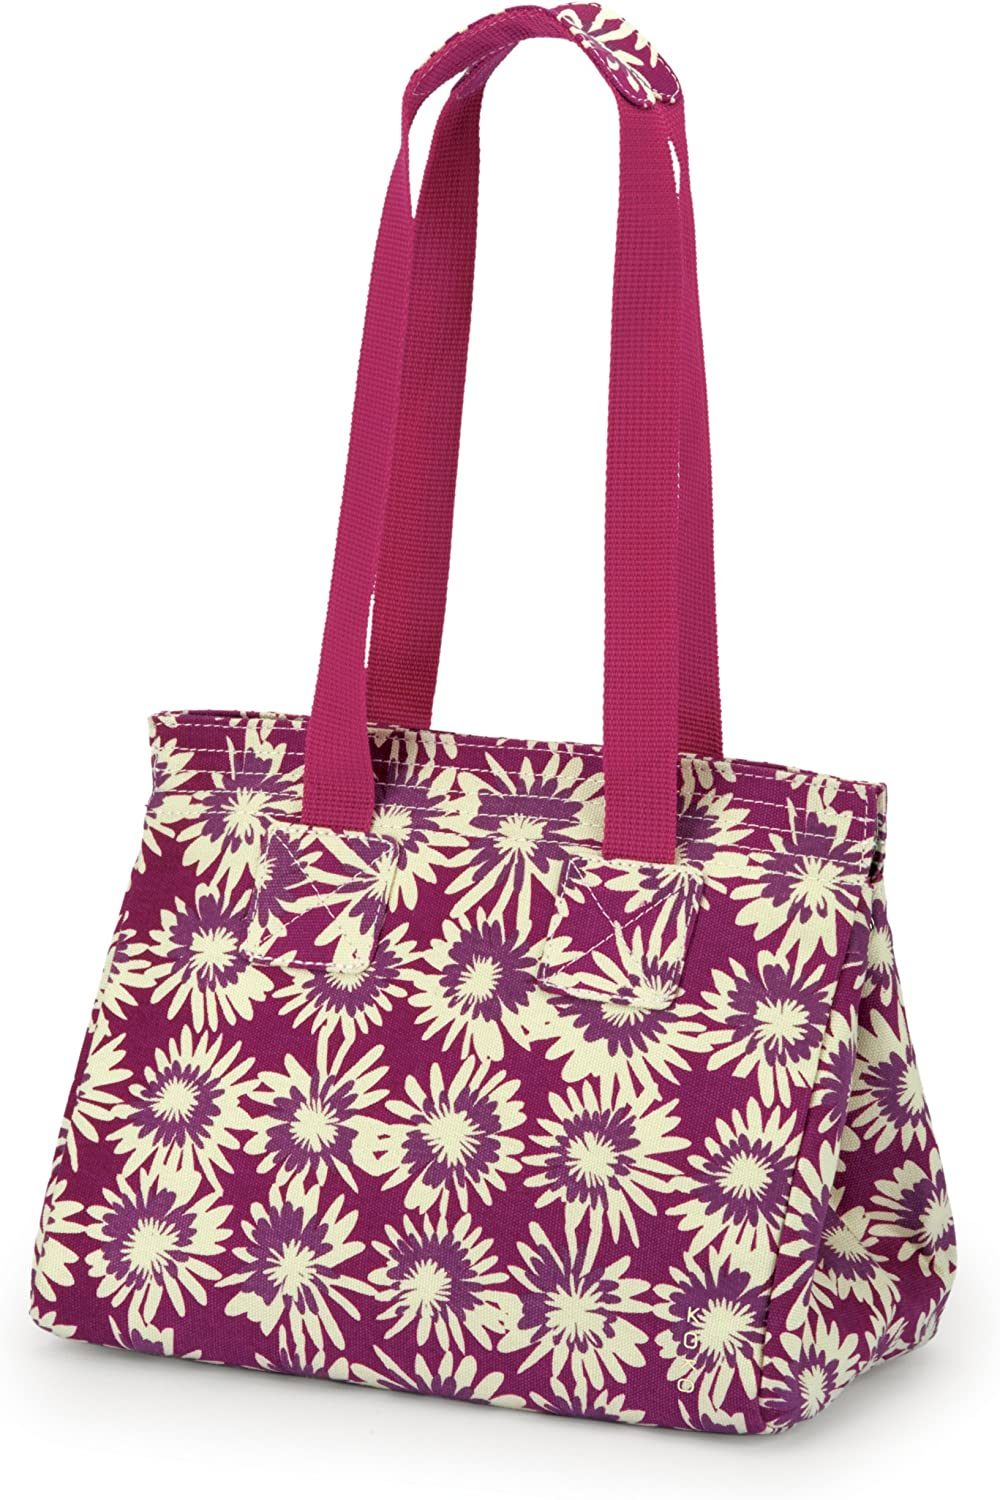 Koko Tate Lunch Bag, Pink Floral Burst Cotton